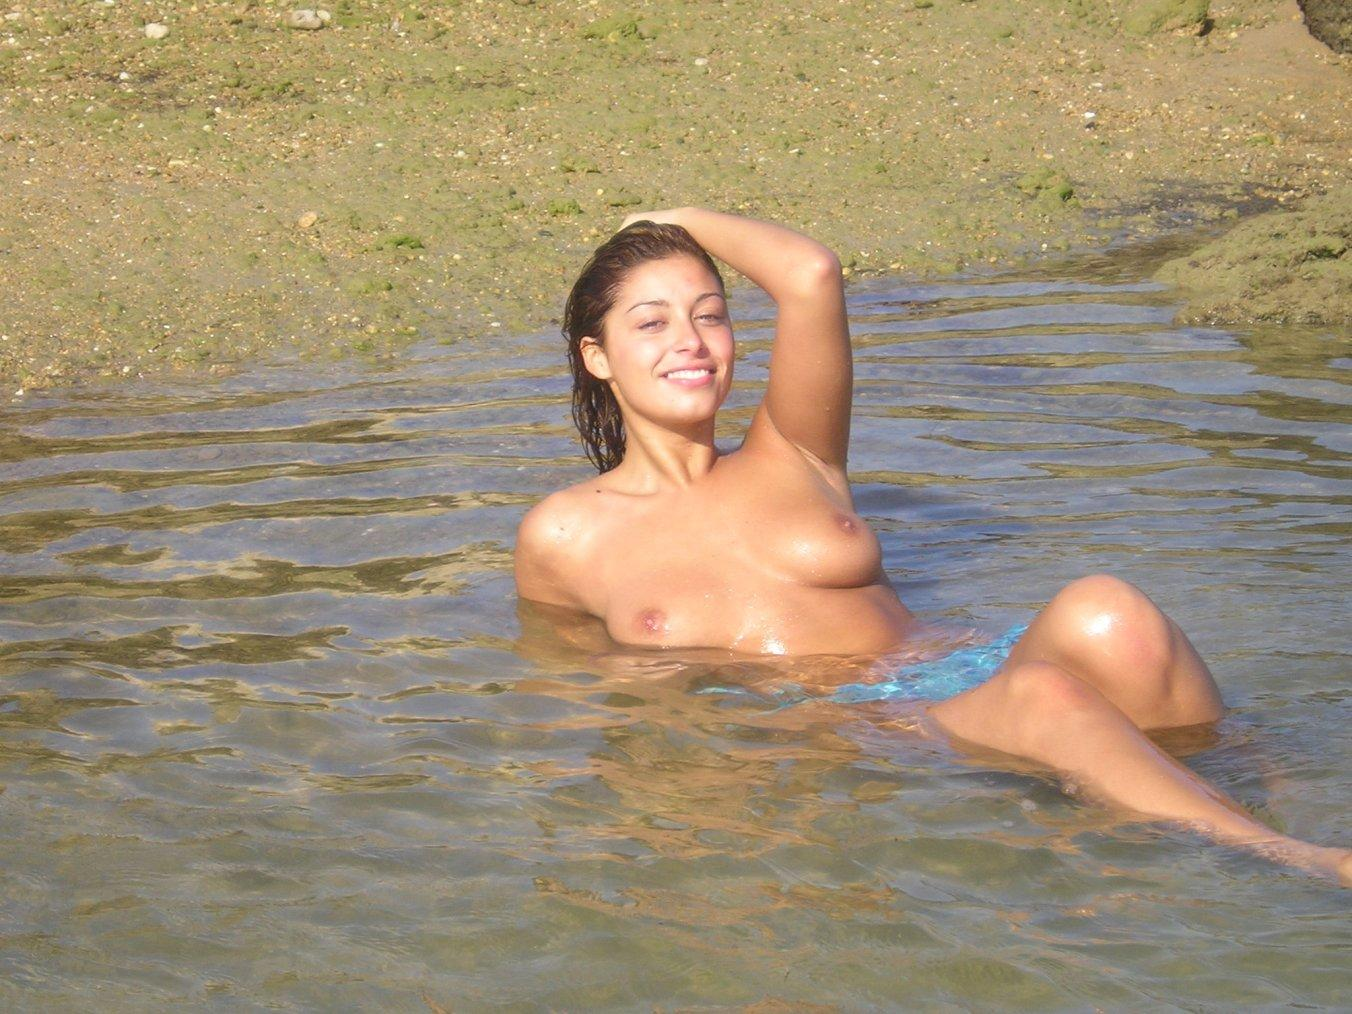 Hot topless brunette laid back in the water